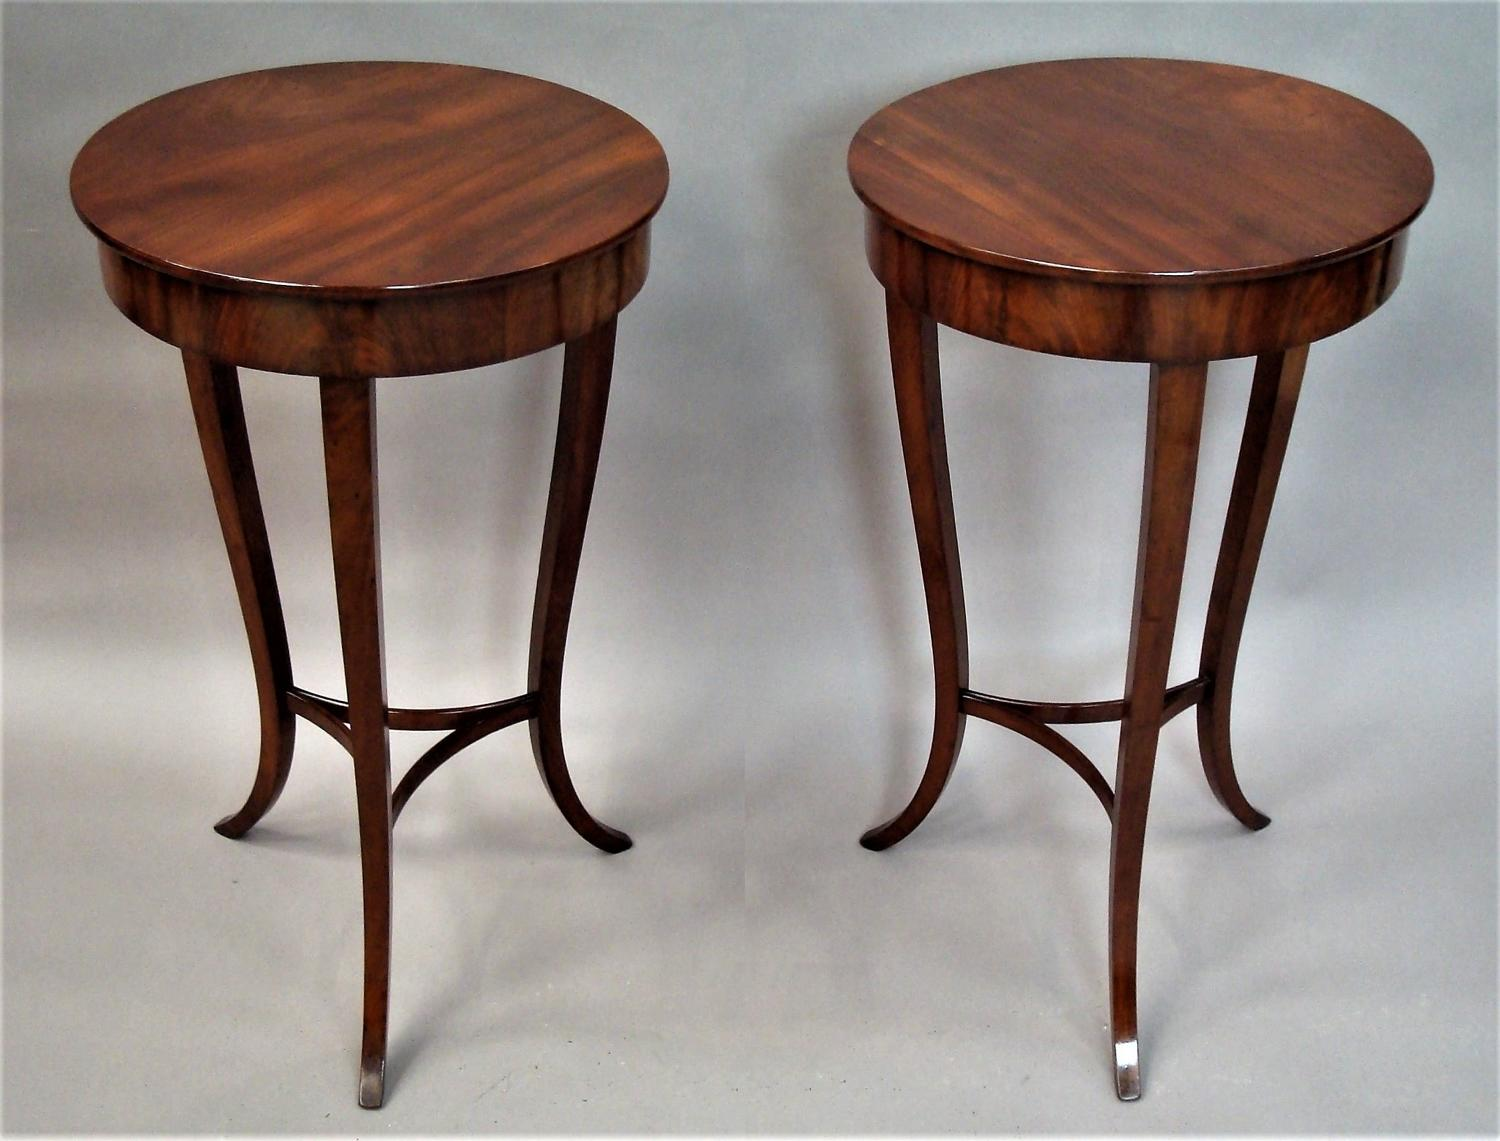 C19th pair of mahogany end tables